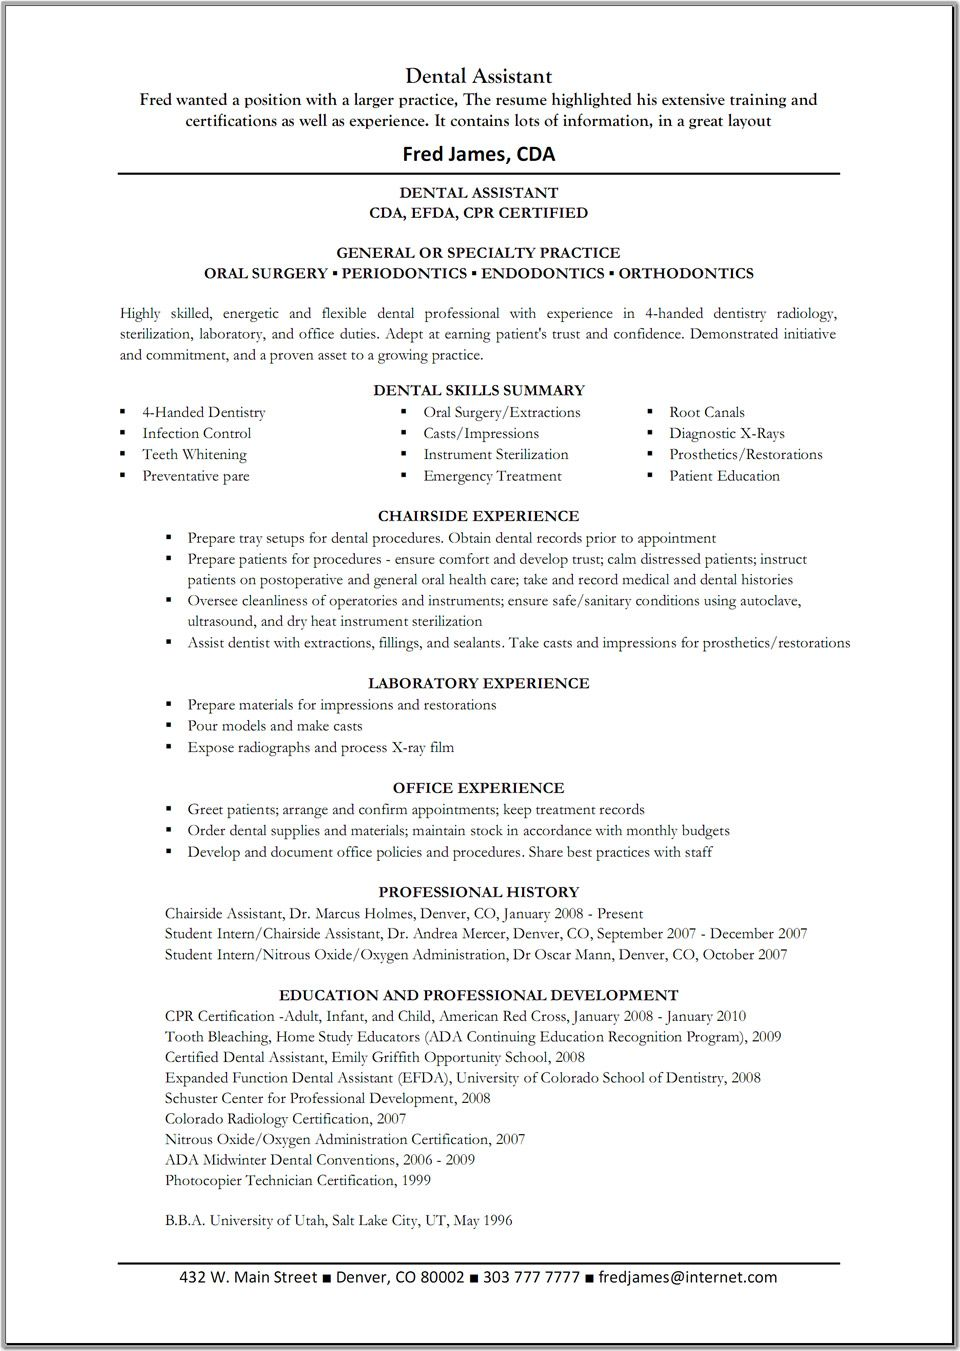 How To Prepare A Resume Brilliant Dental Assistant Resume Template  Great Resume Templates  Dental